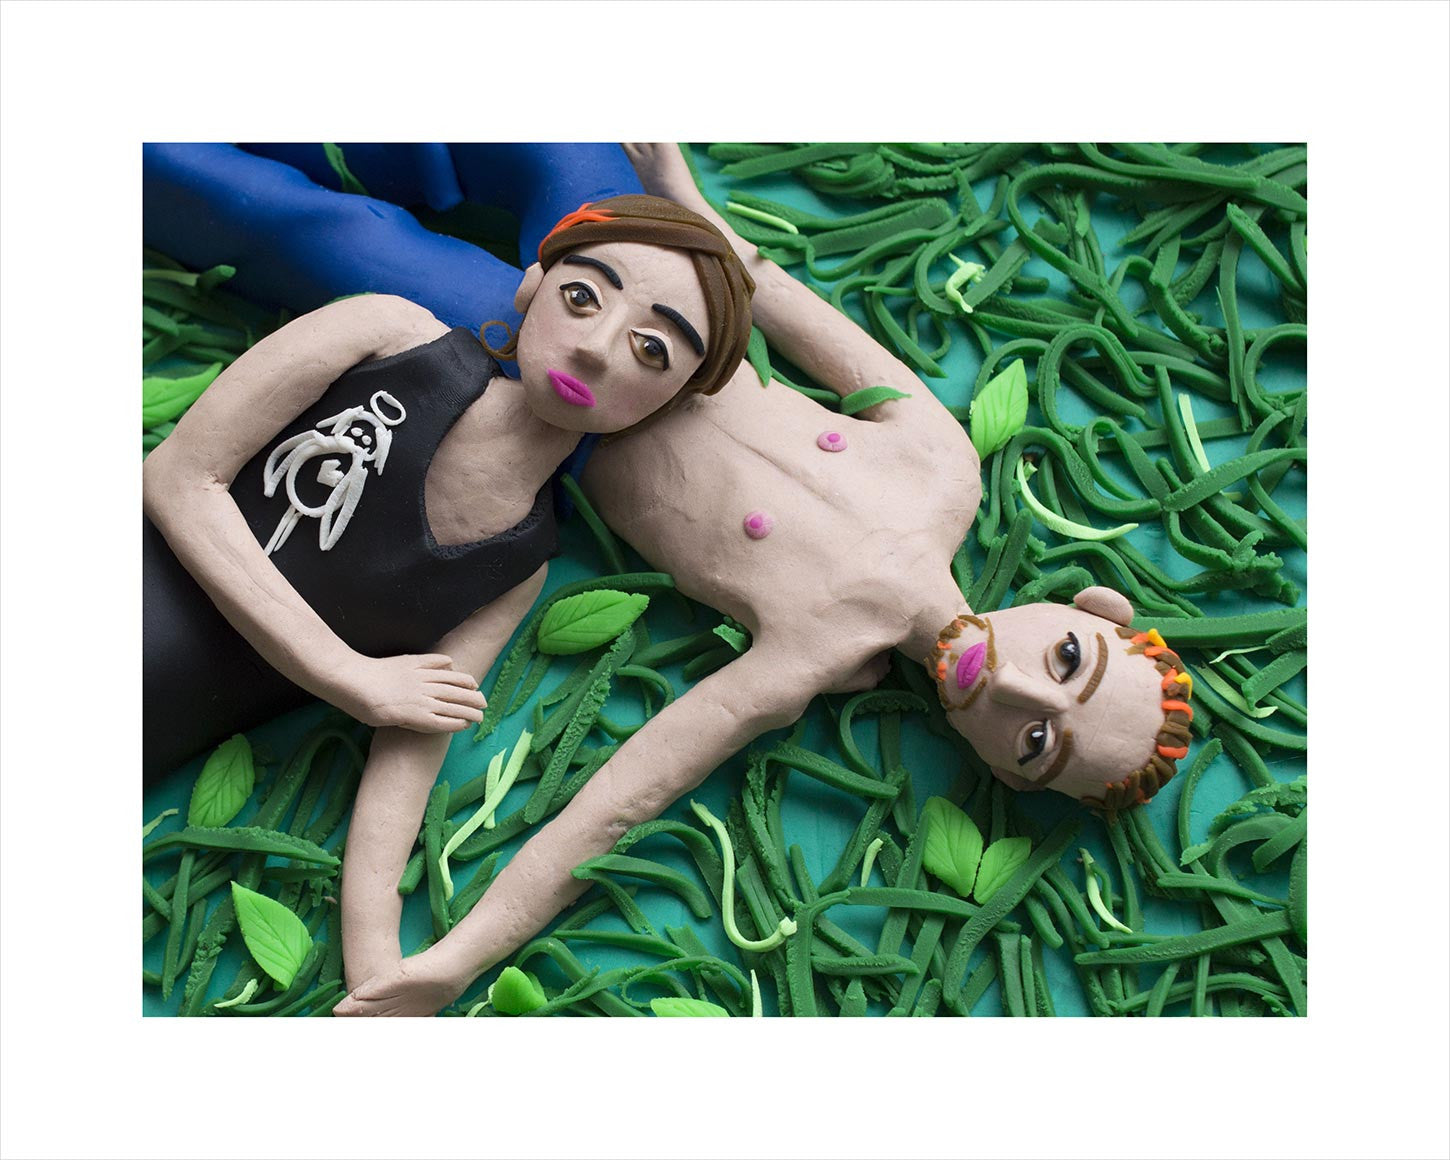 Photographs Rendered in Play-Doh: Tricia and Curtis, Canada 2005 from 'Niagara' by Alec Soth